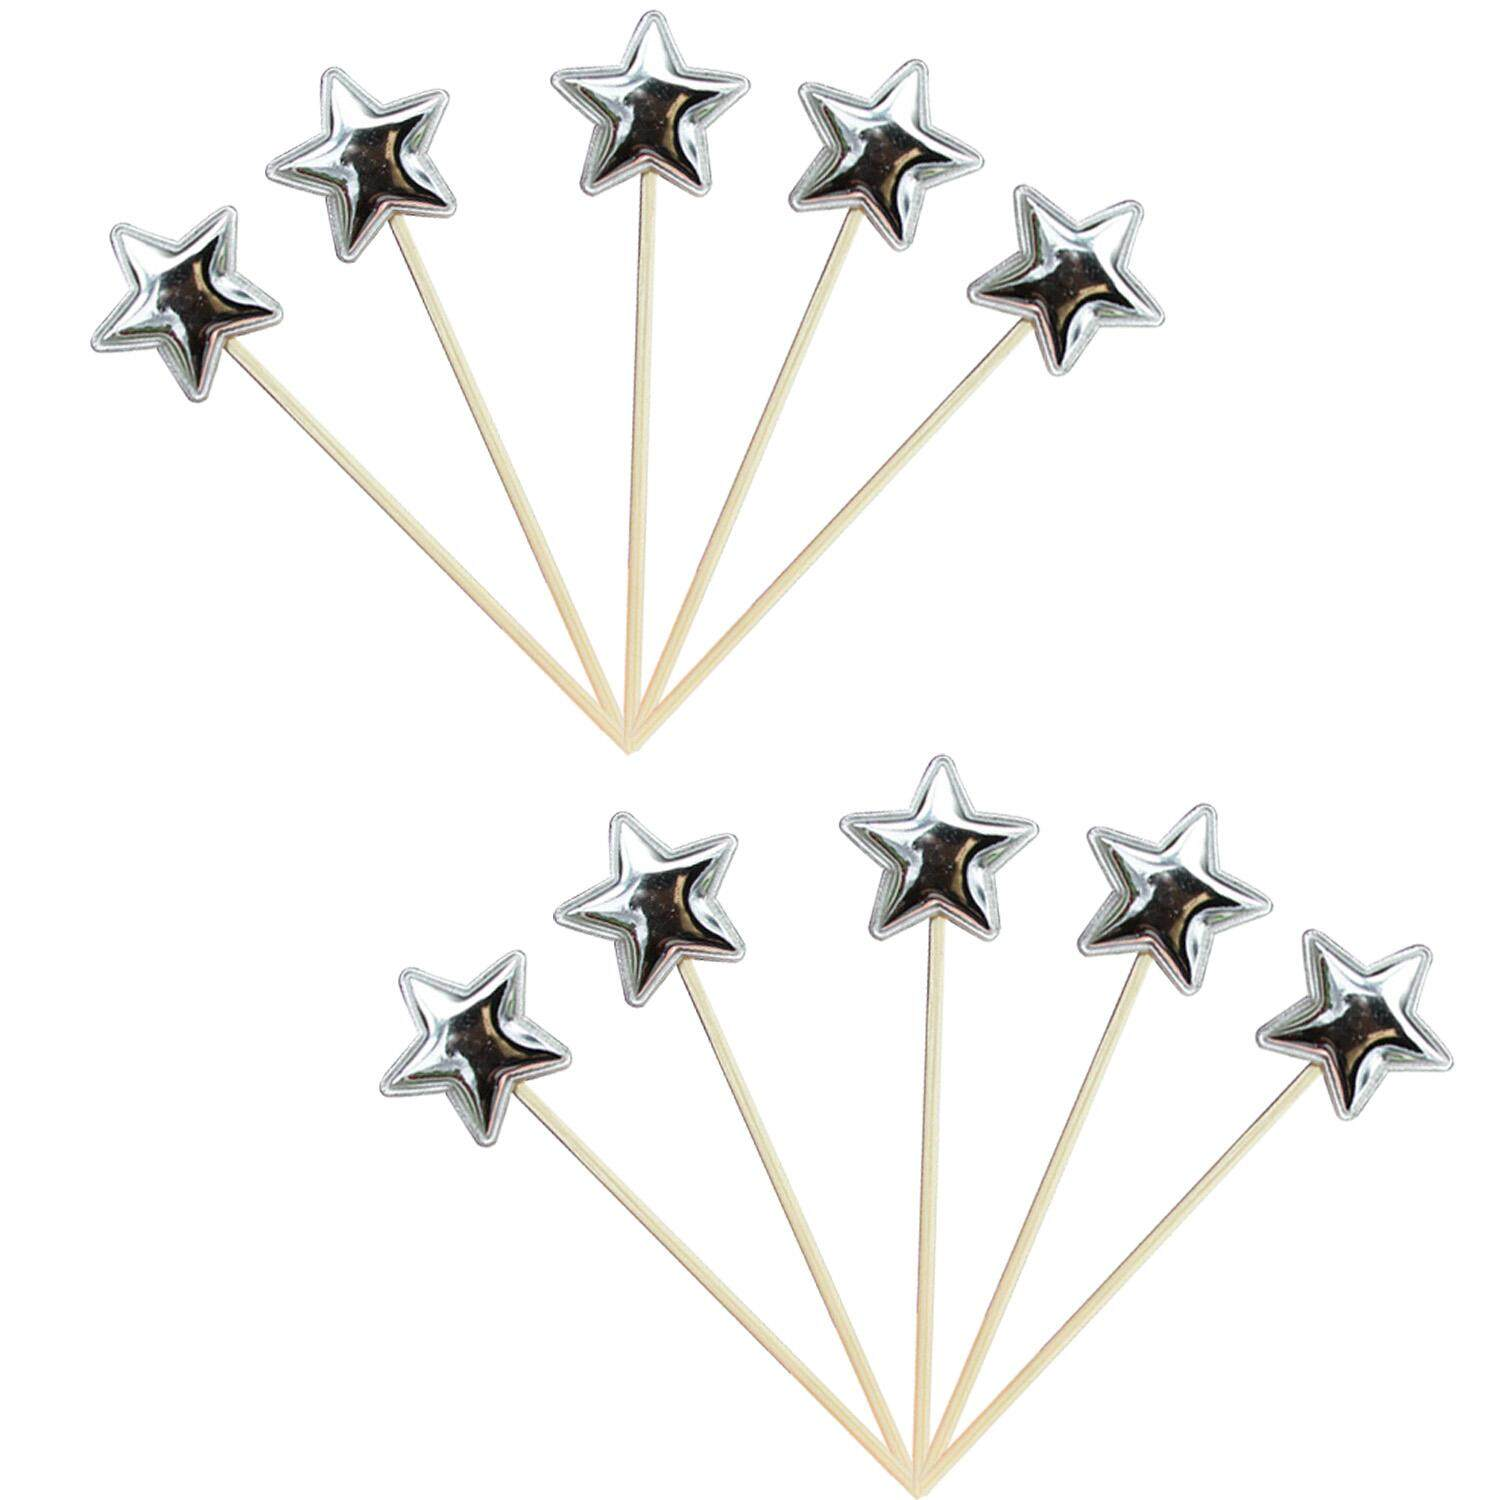 10pcs Lovely Star Shape Cake Topper Picks Birthday Cupcake Snacks Decor For Baby Shower Wedding Party Decoration Supplies Random Color - Intl By Stoneky